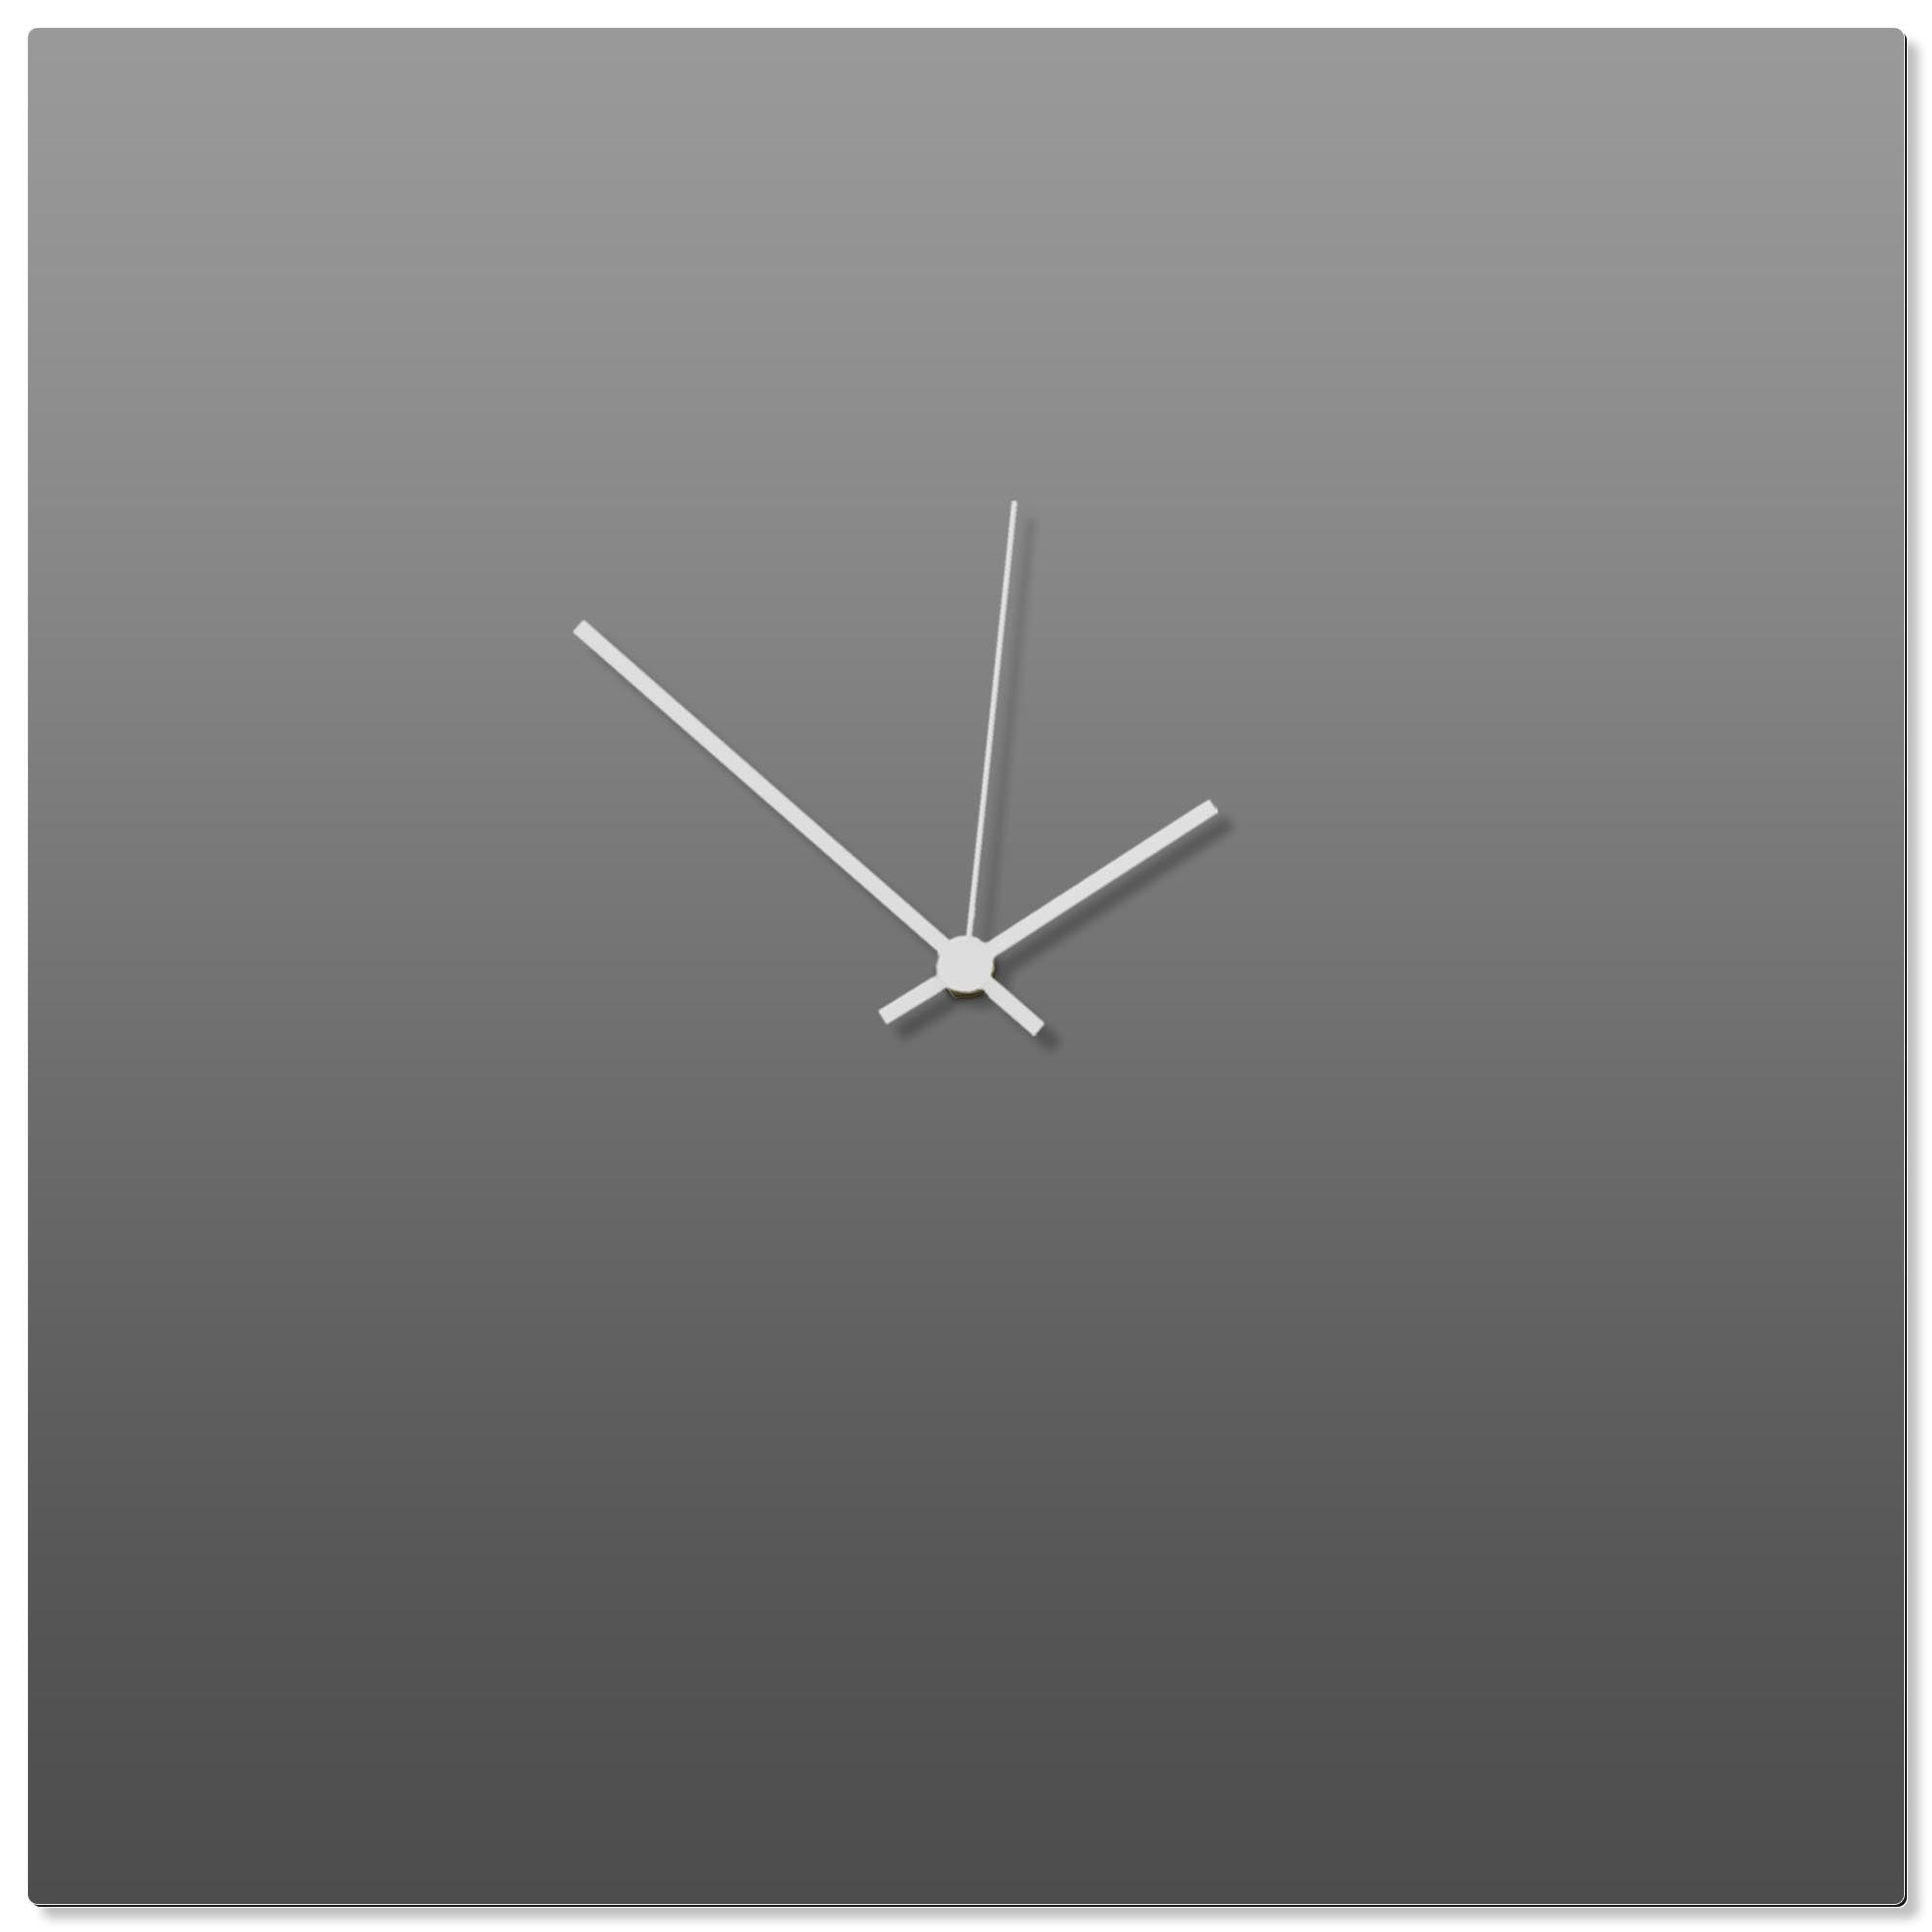 Grayout White Square Clock Large by Adam Schwoeppe - Contemporary Clock on Aluminum Polymetal